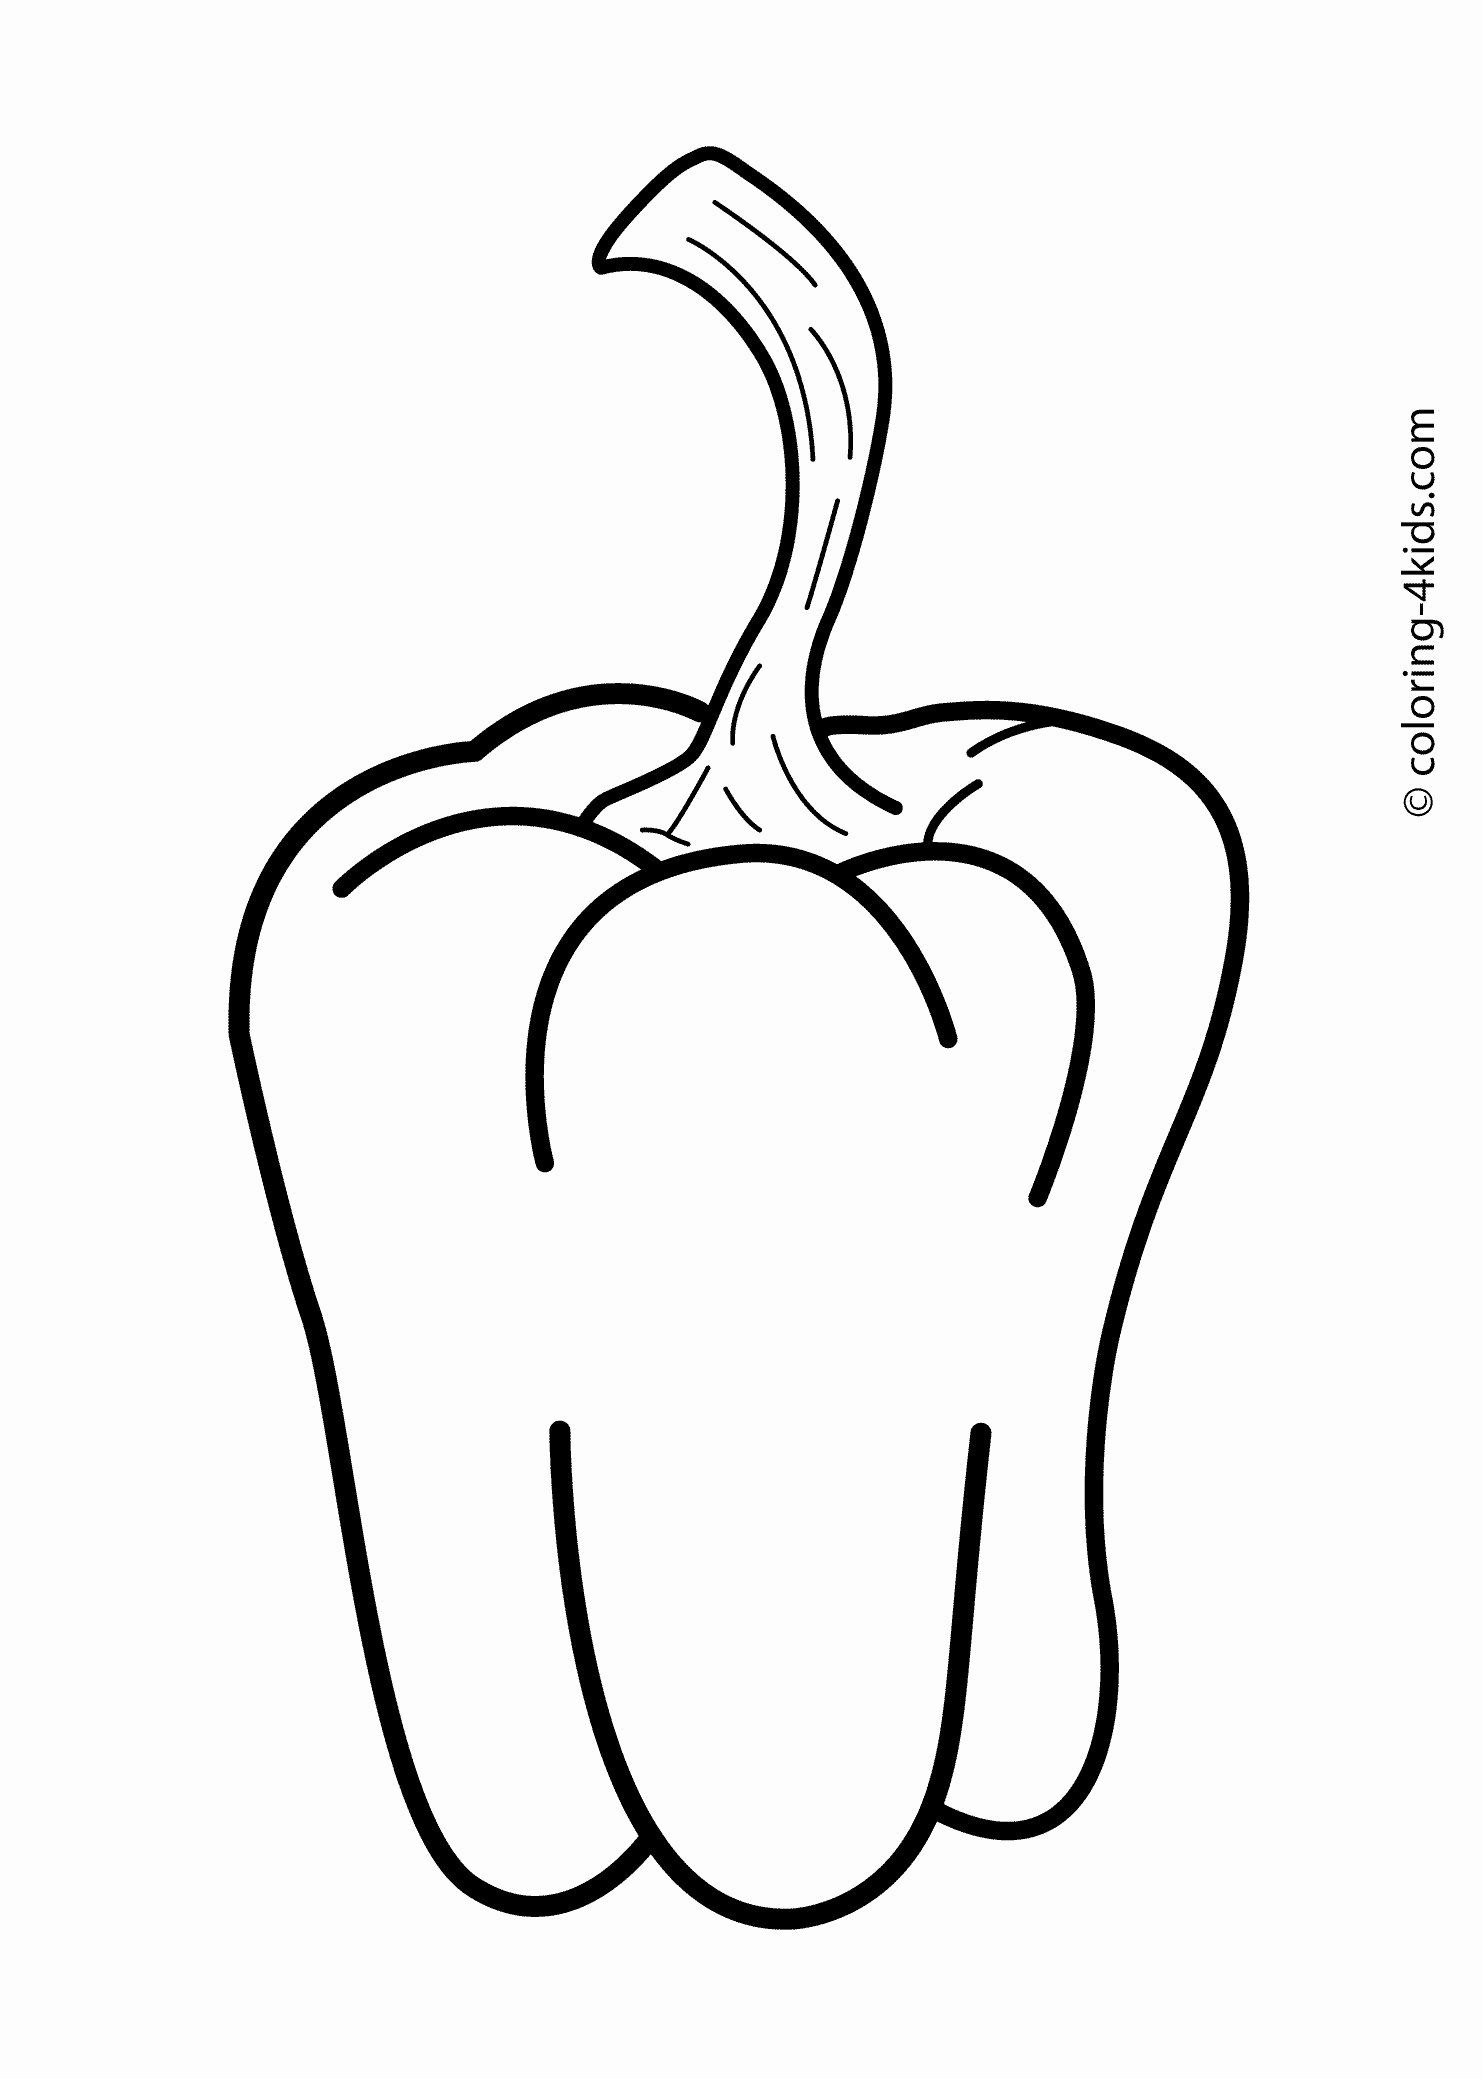 vegetables drawing for coloring vegetable coloring pages free download on clipartmag vegetables drawing for coloring